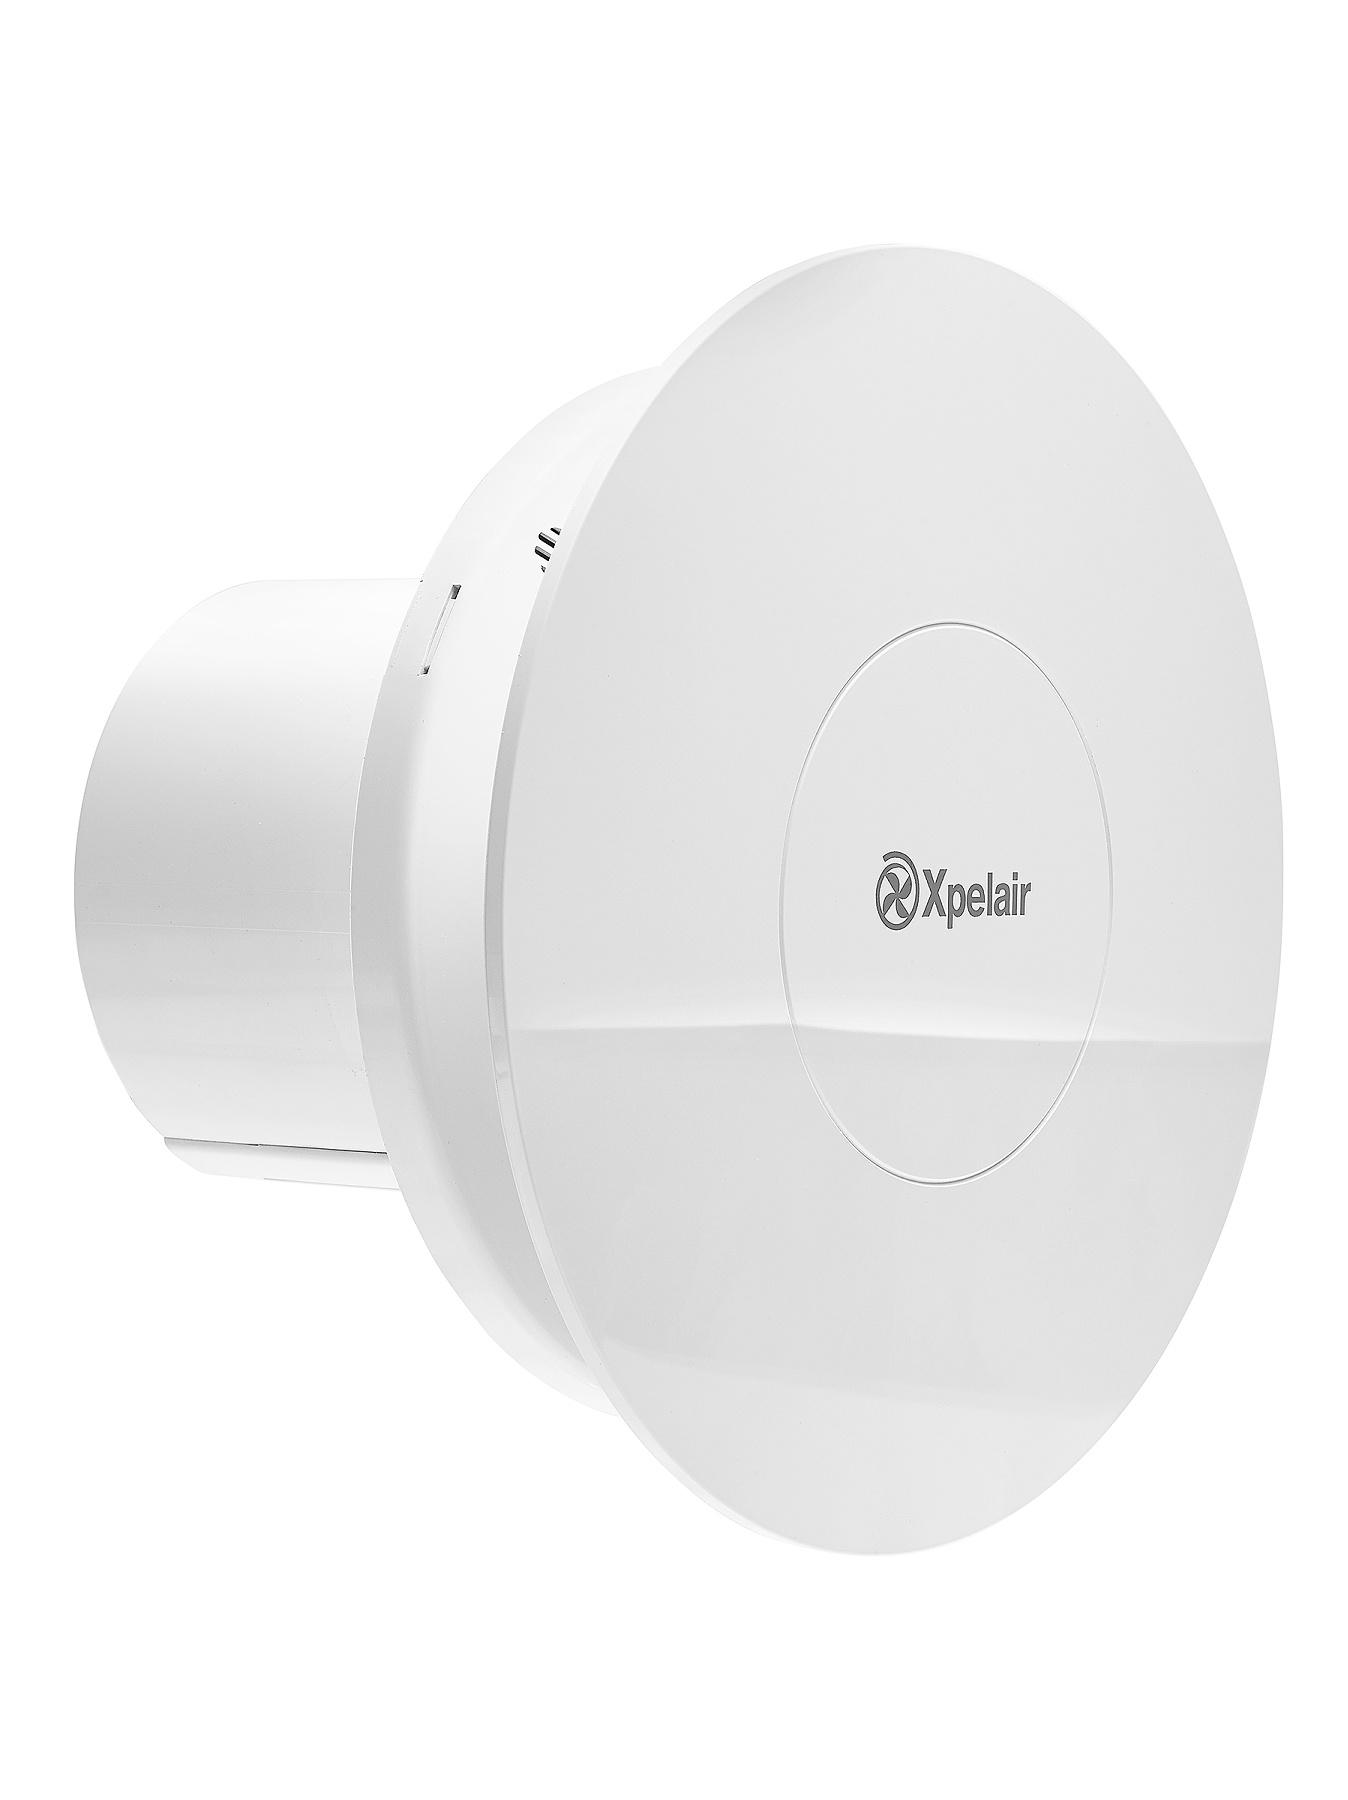 Xpelair Simple Silent Contour Round Bathroom Extractor Fan